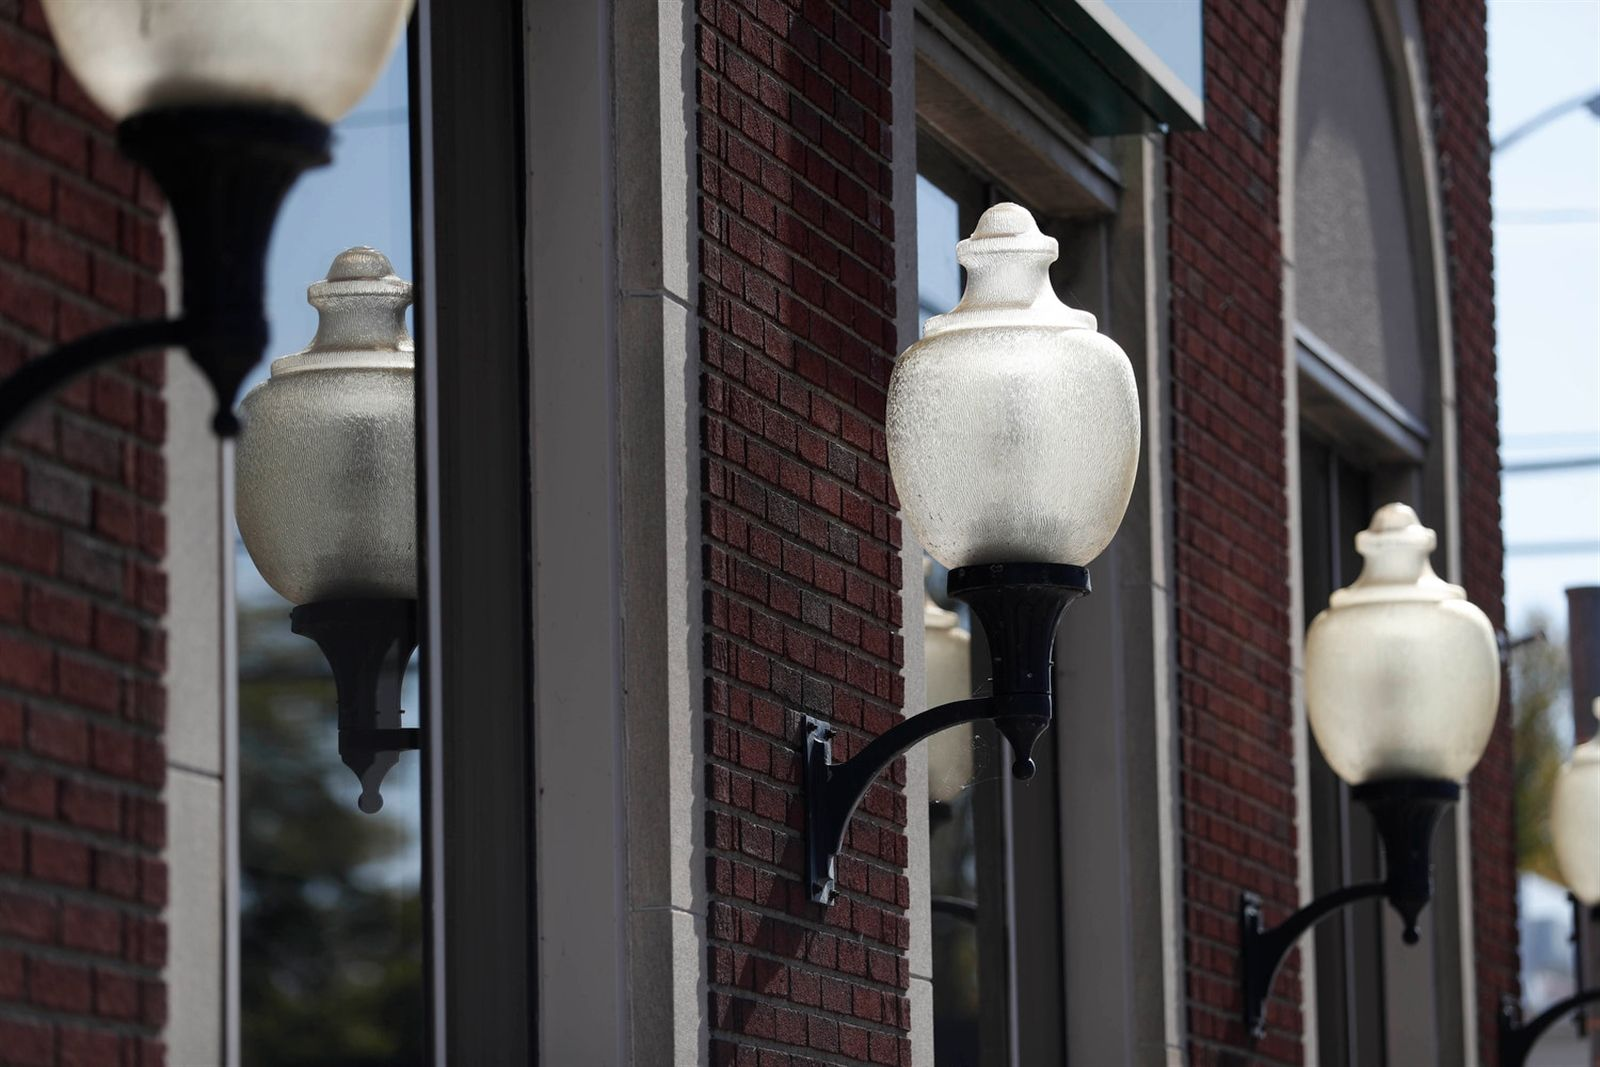 Lamps along the exterior of M&T Bank on Main Street.